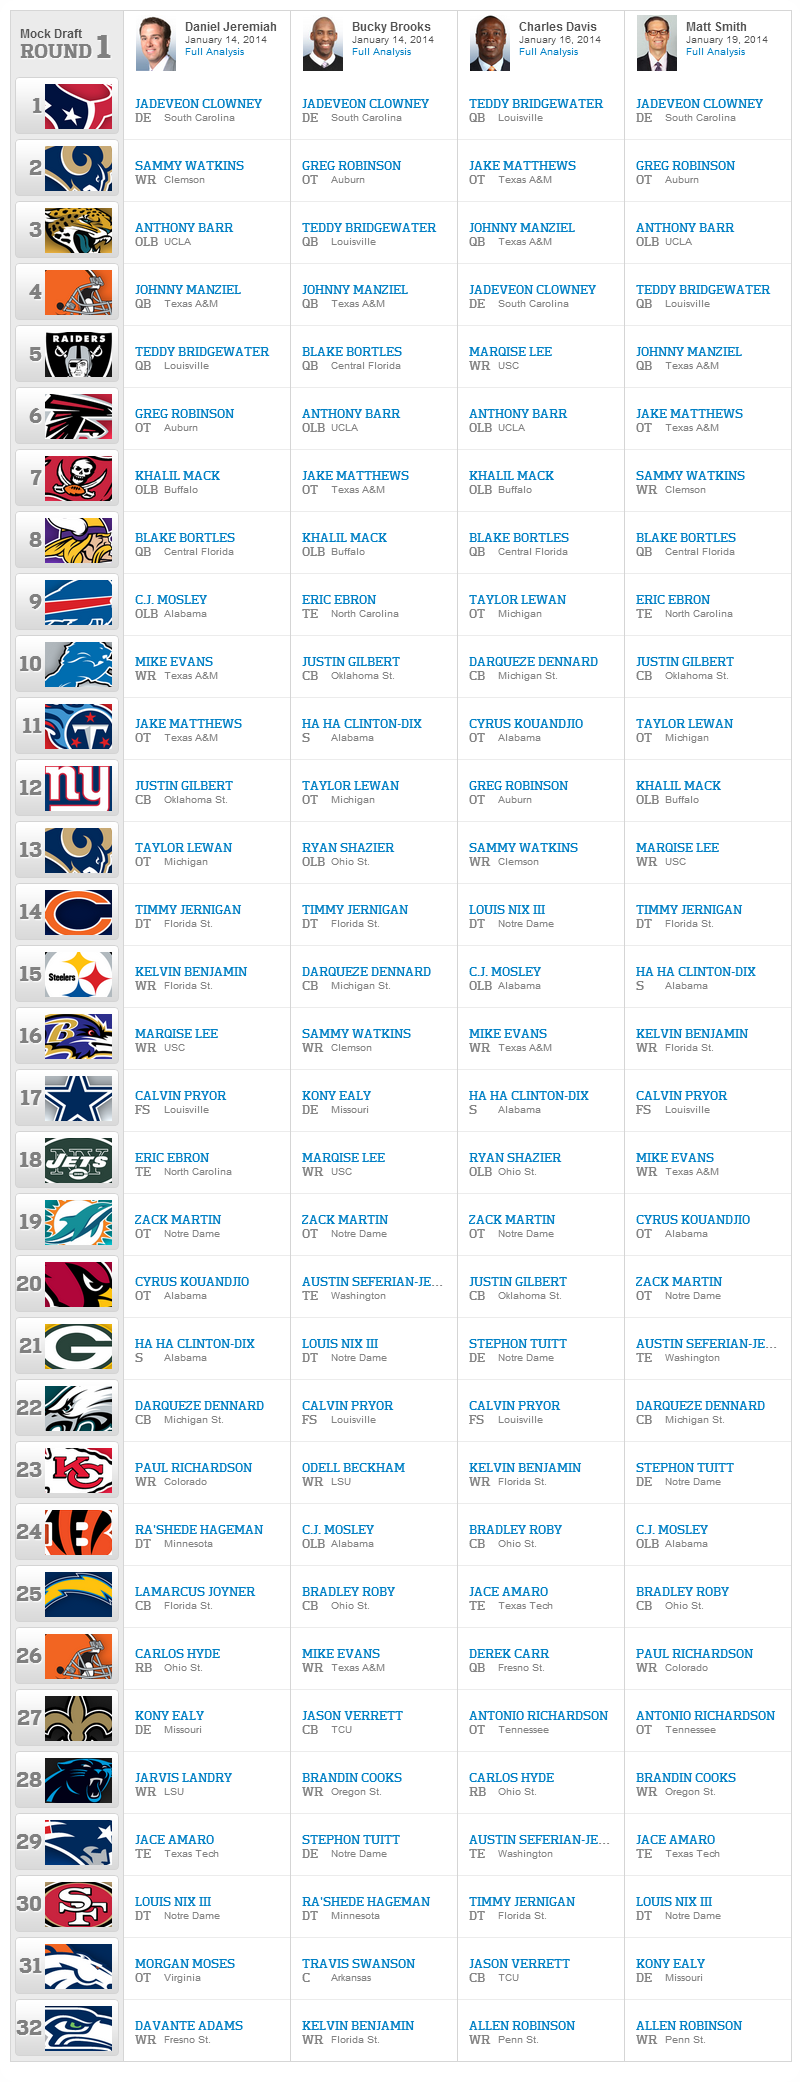 2014 NFL DRAFT 2014 - Dallas Cowboys 2014 Mock Draft 1.0 - as of 01-26